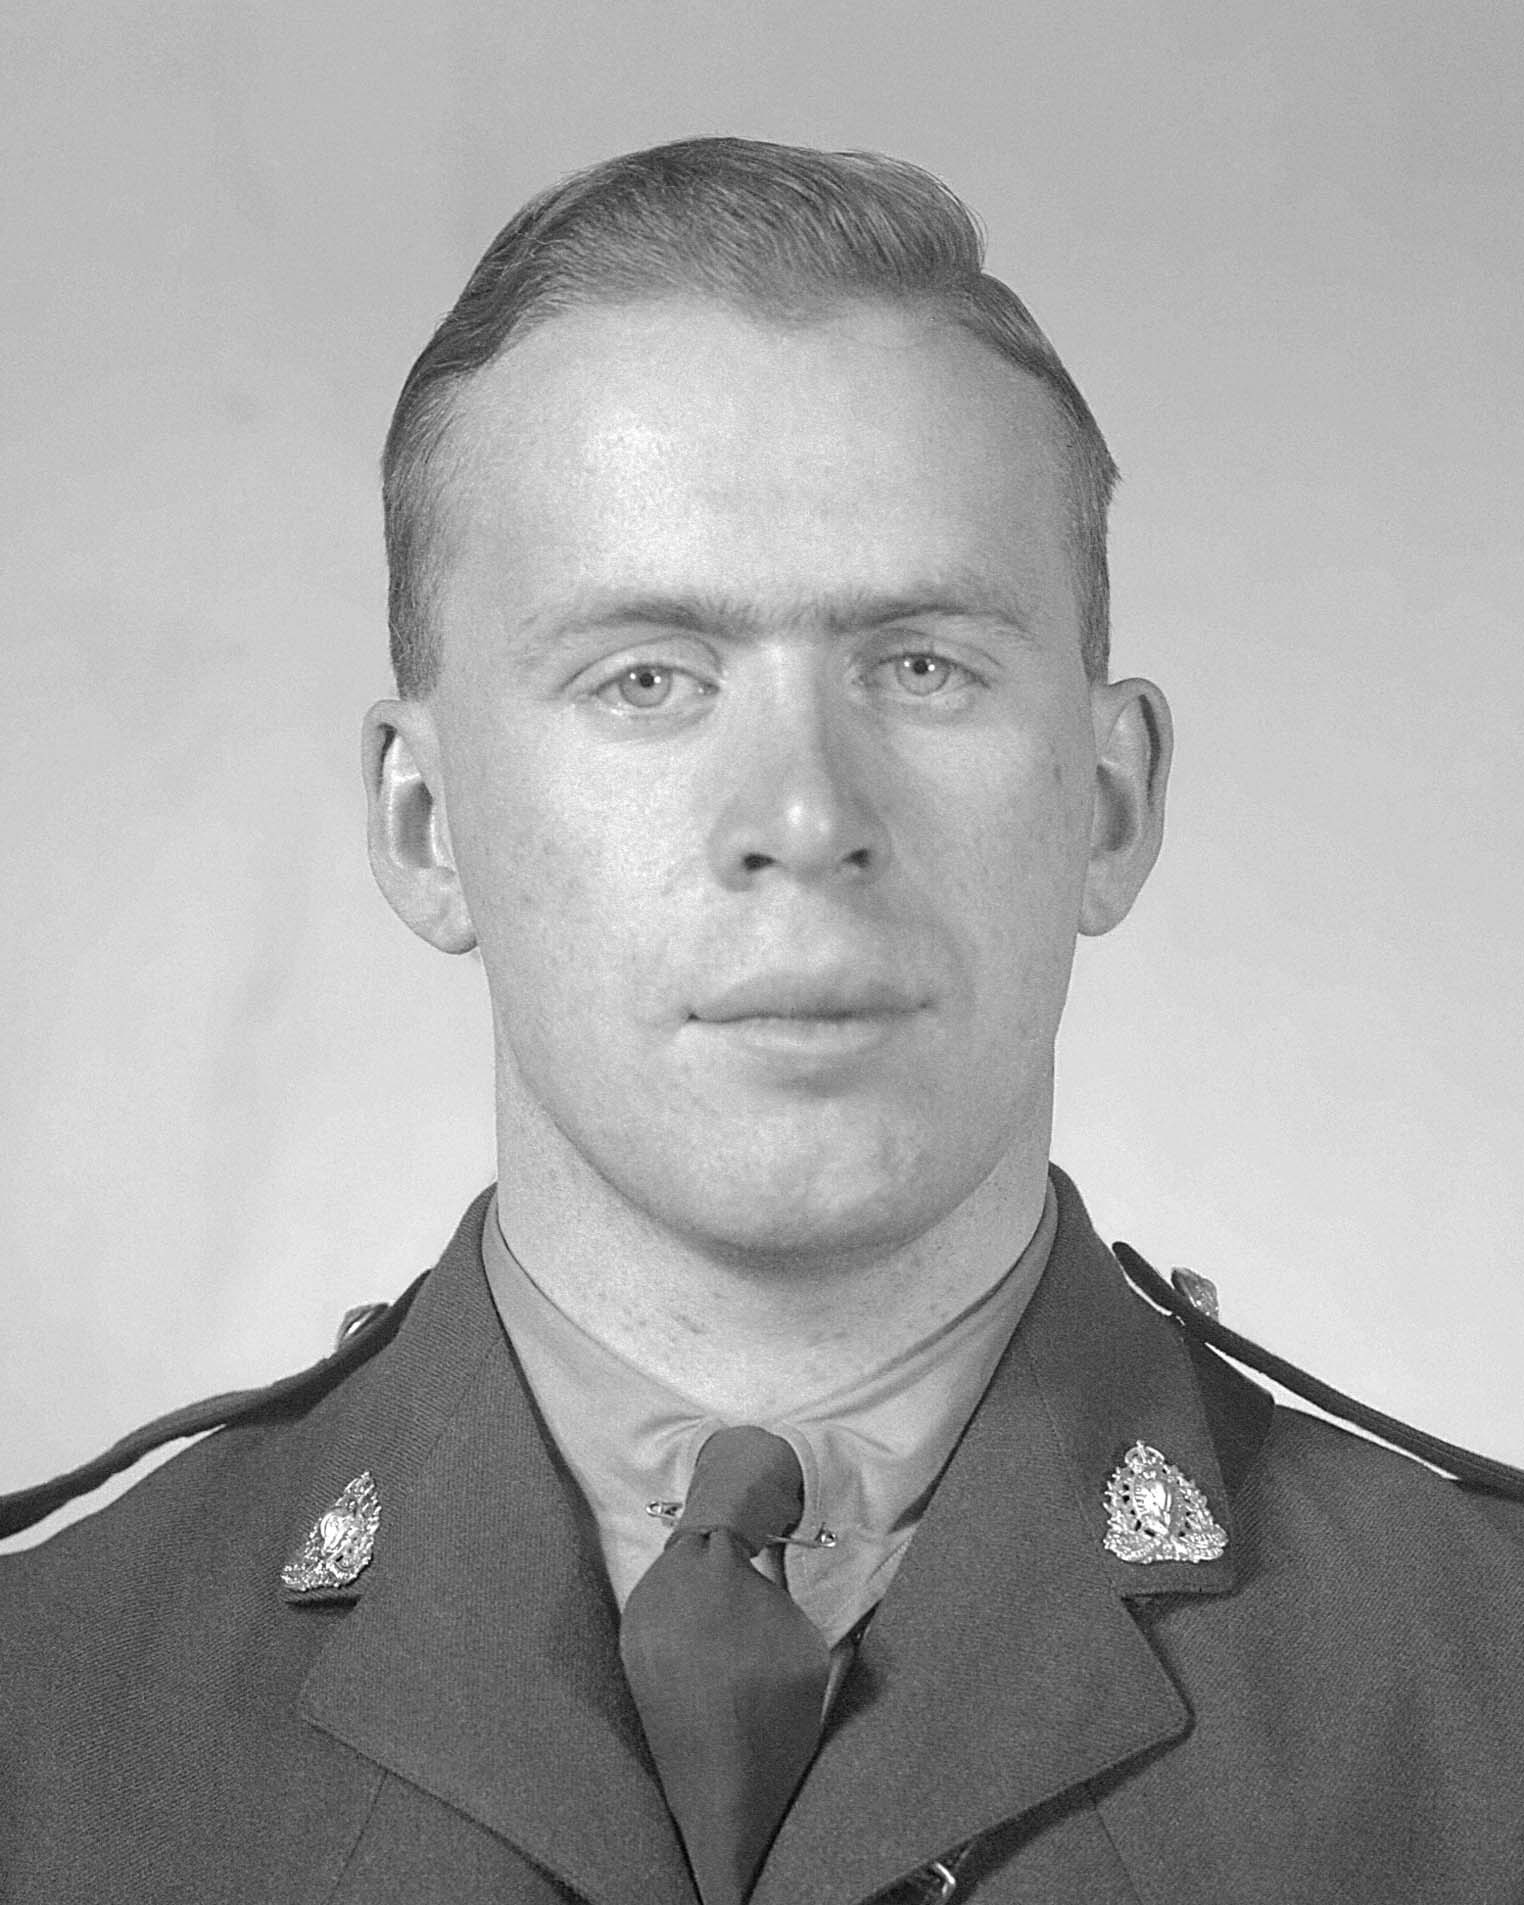 Corporal Herbert Milton Smart – © Her Majesty the Queen in Right of Canada as represented by the Royal Canadian Mounted Police